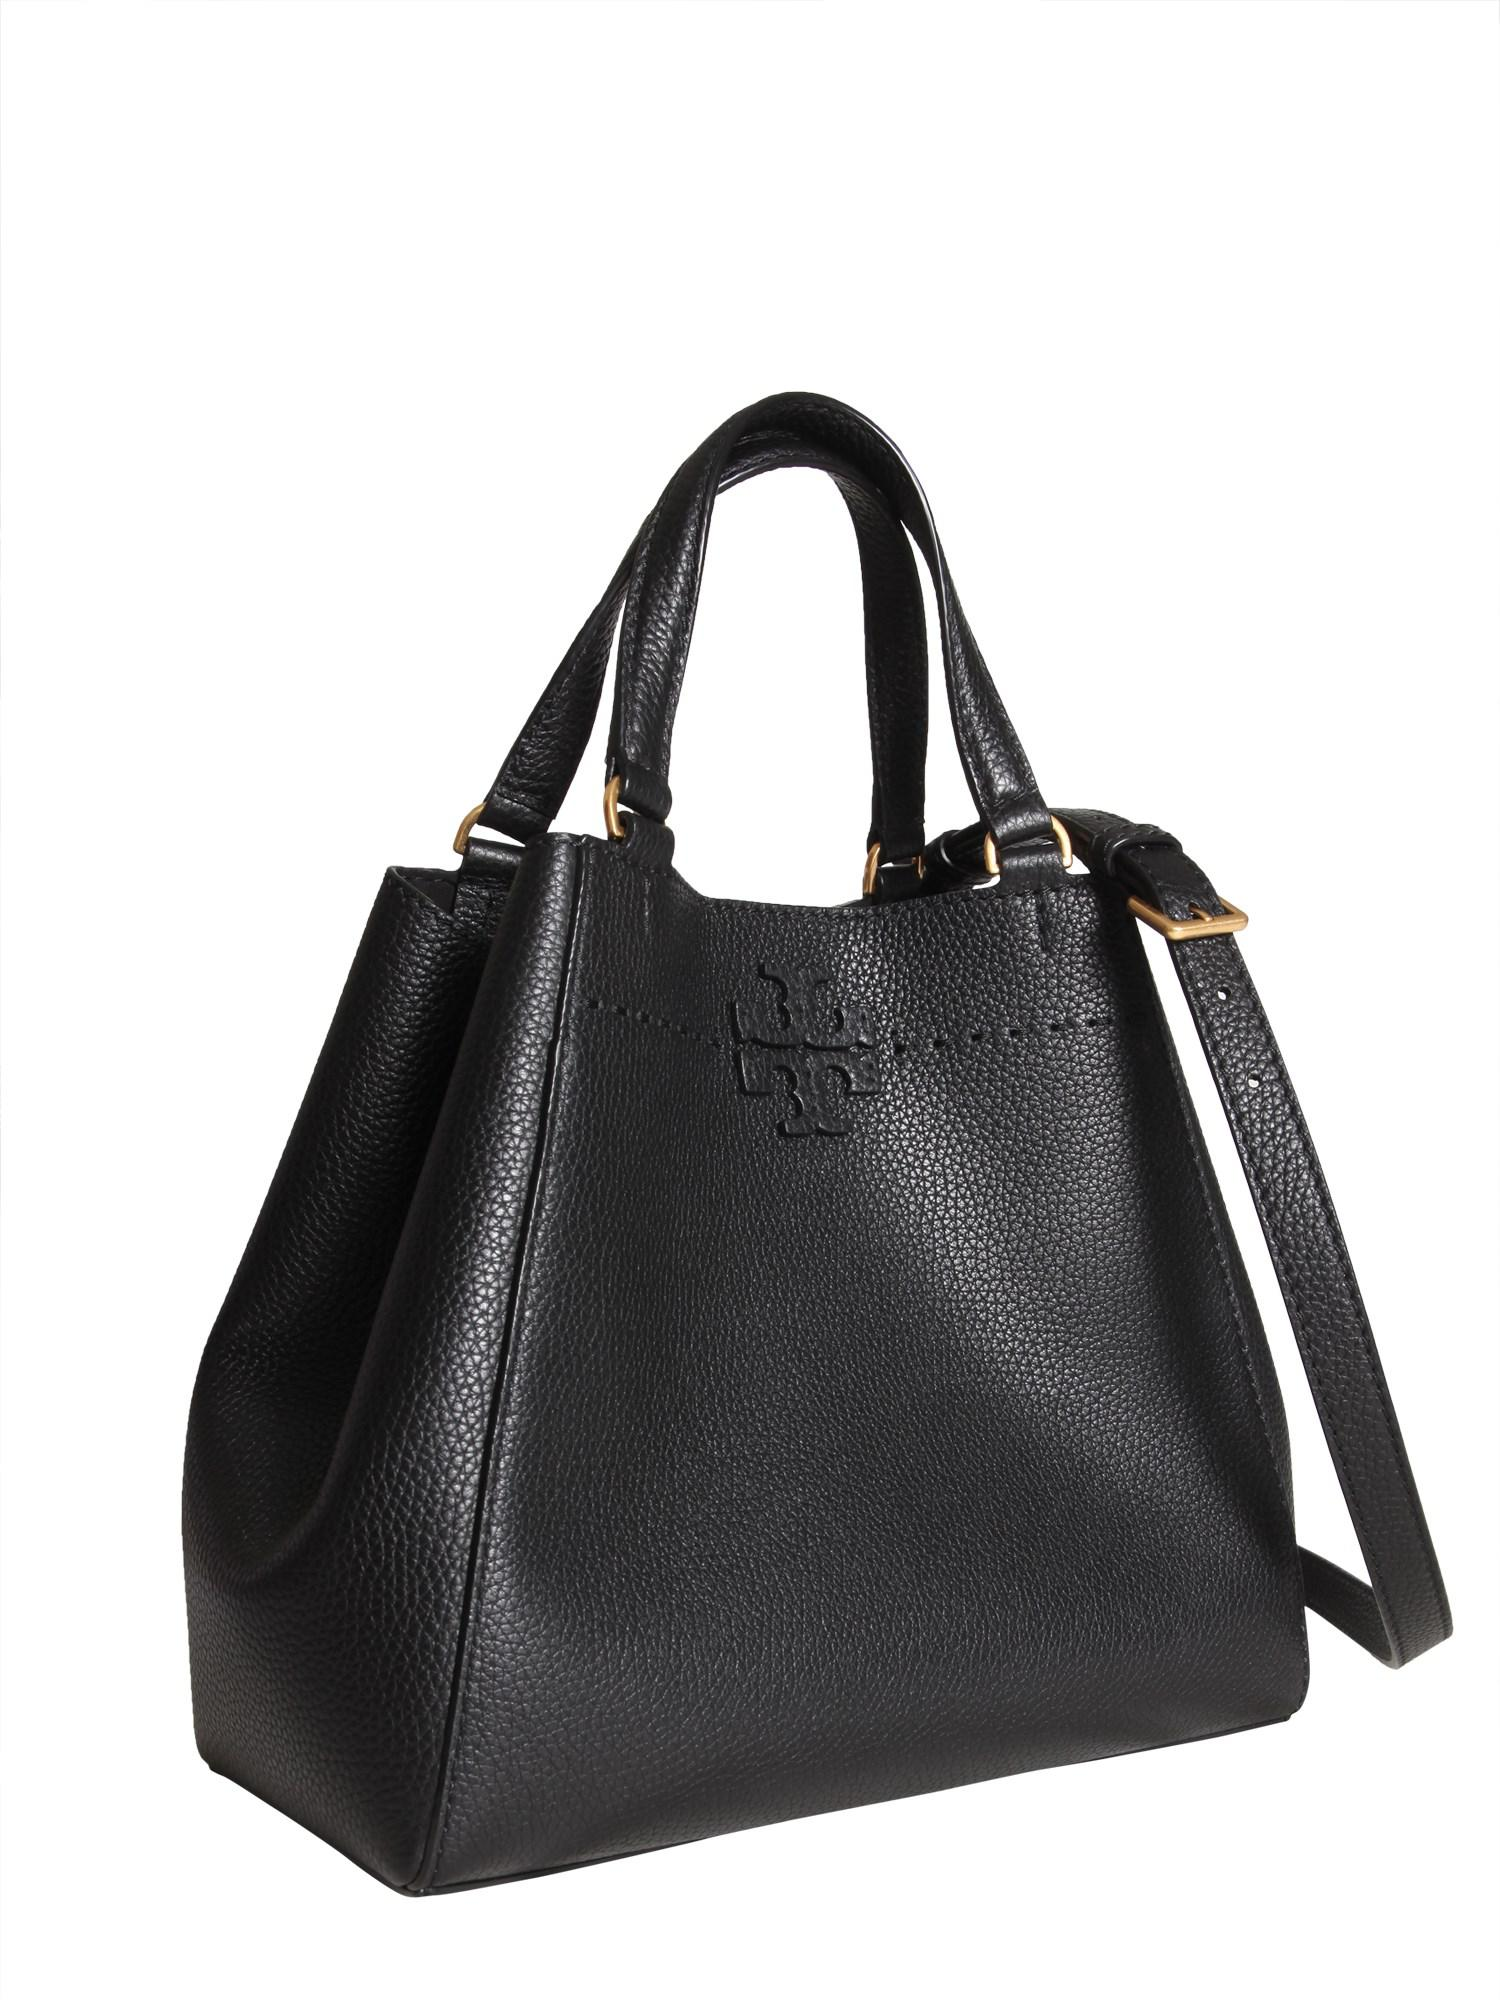 fd7acd2aa2e9 Lyst - Tory Burch Mcgraw Small Carryall Hammered Leather Bag in Black